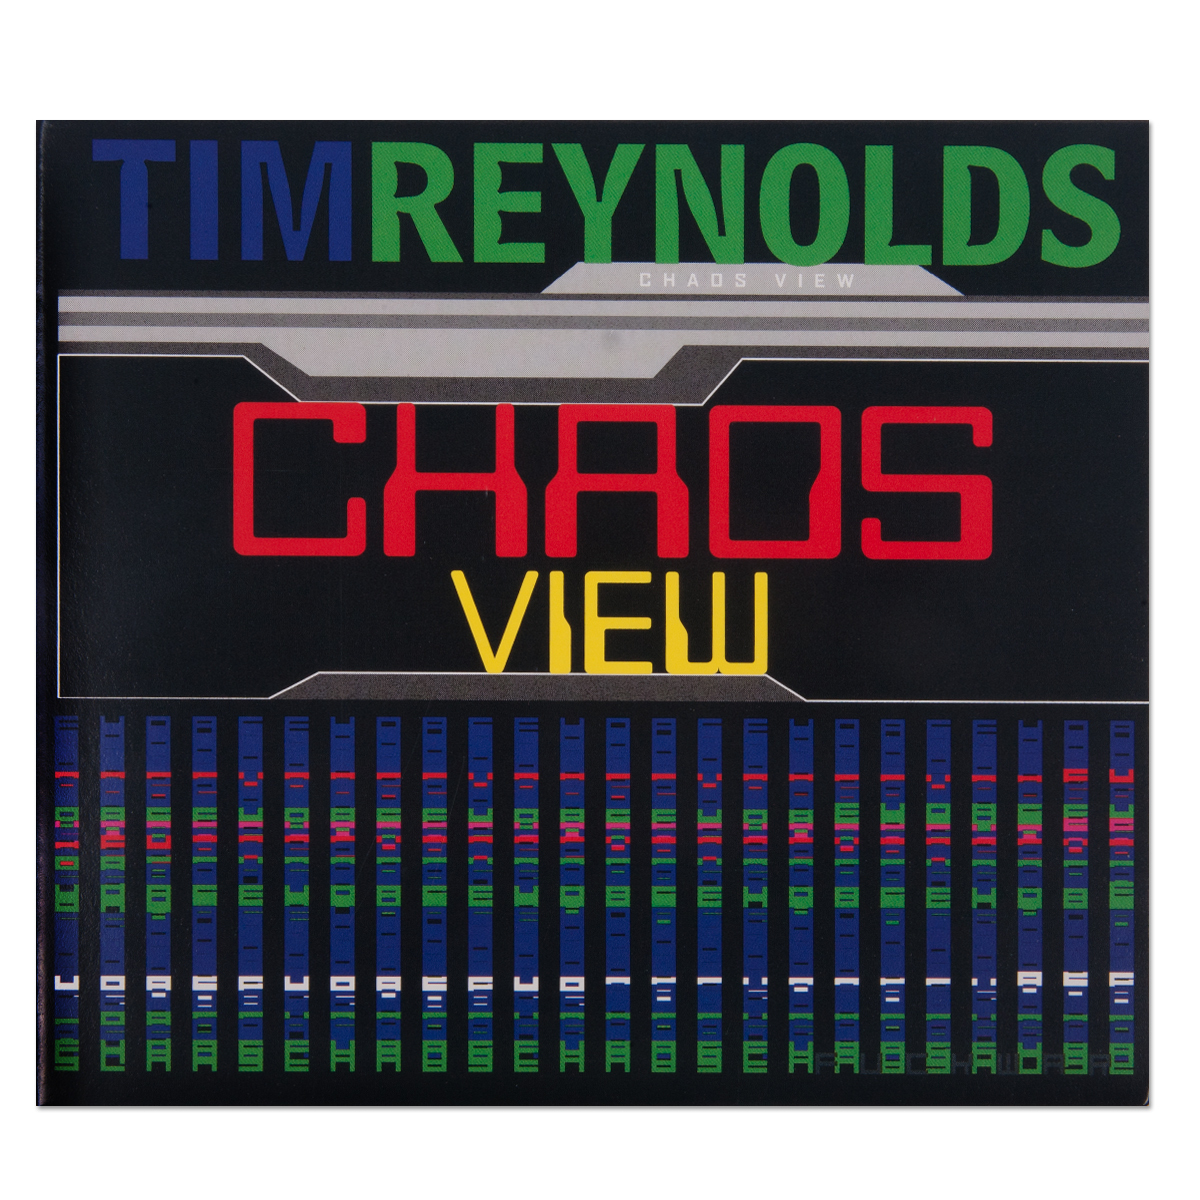 Chaos View CD